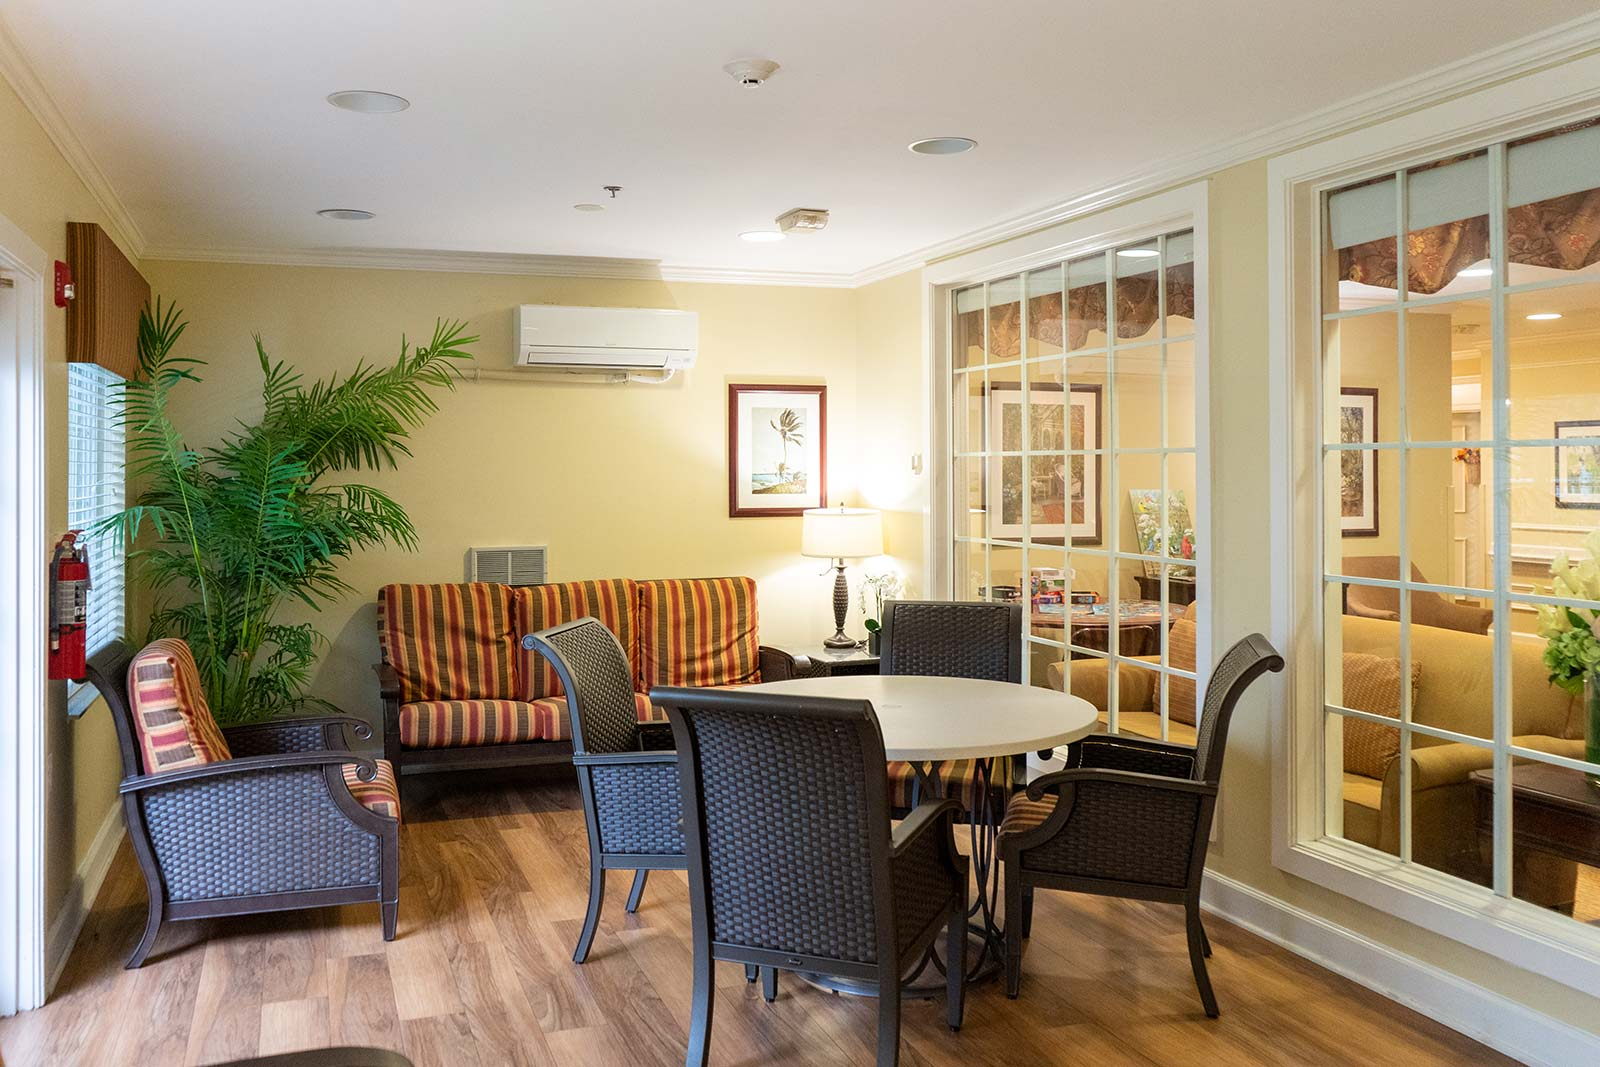 Sun room at The Colonnade at Northdale assisted living and memory care community in Tampa, FL